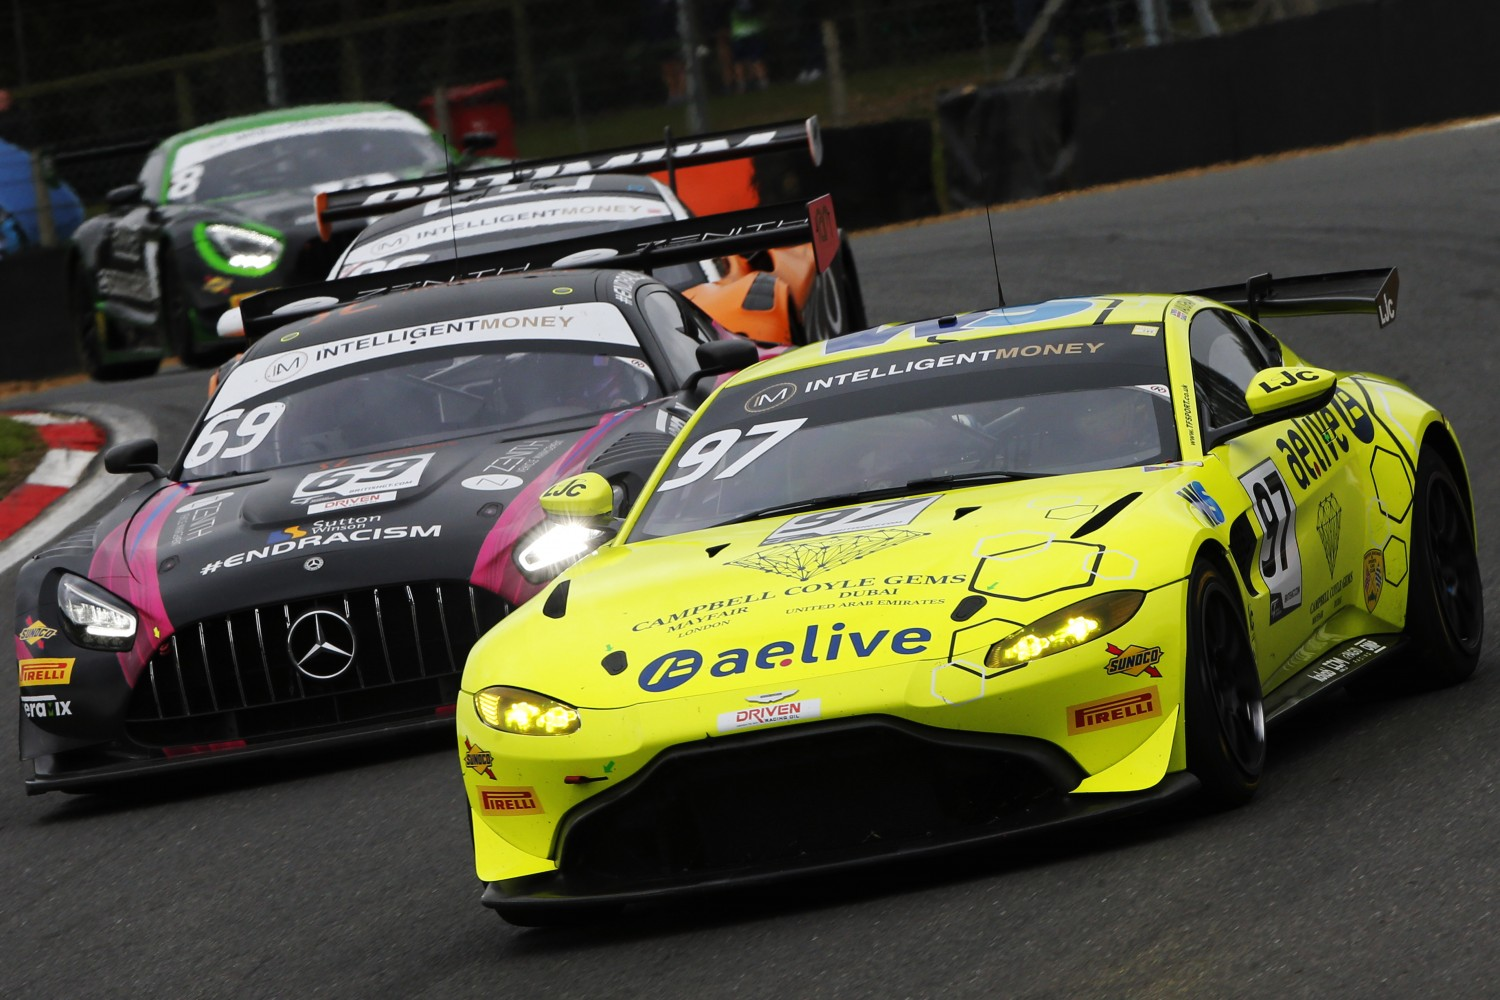 Bumper 38-car entry assembled for Intelligent Money British GT's Silverstone showdown